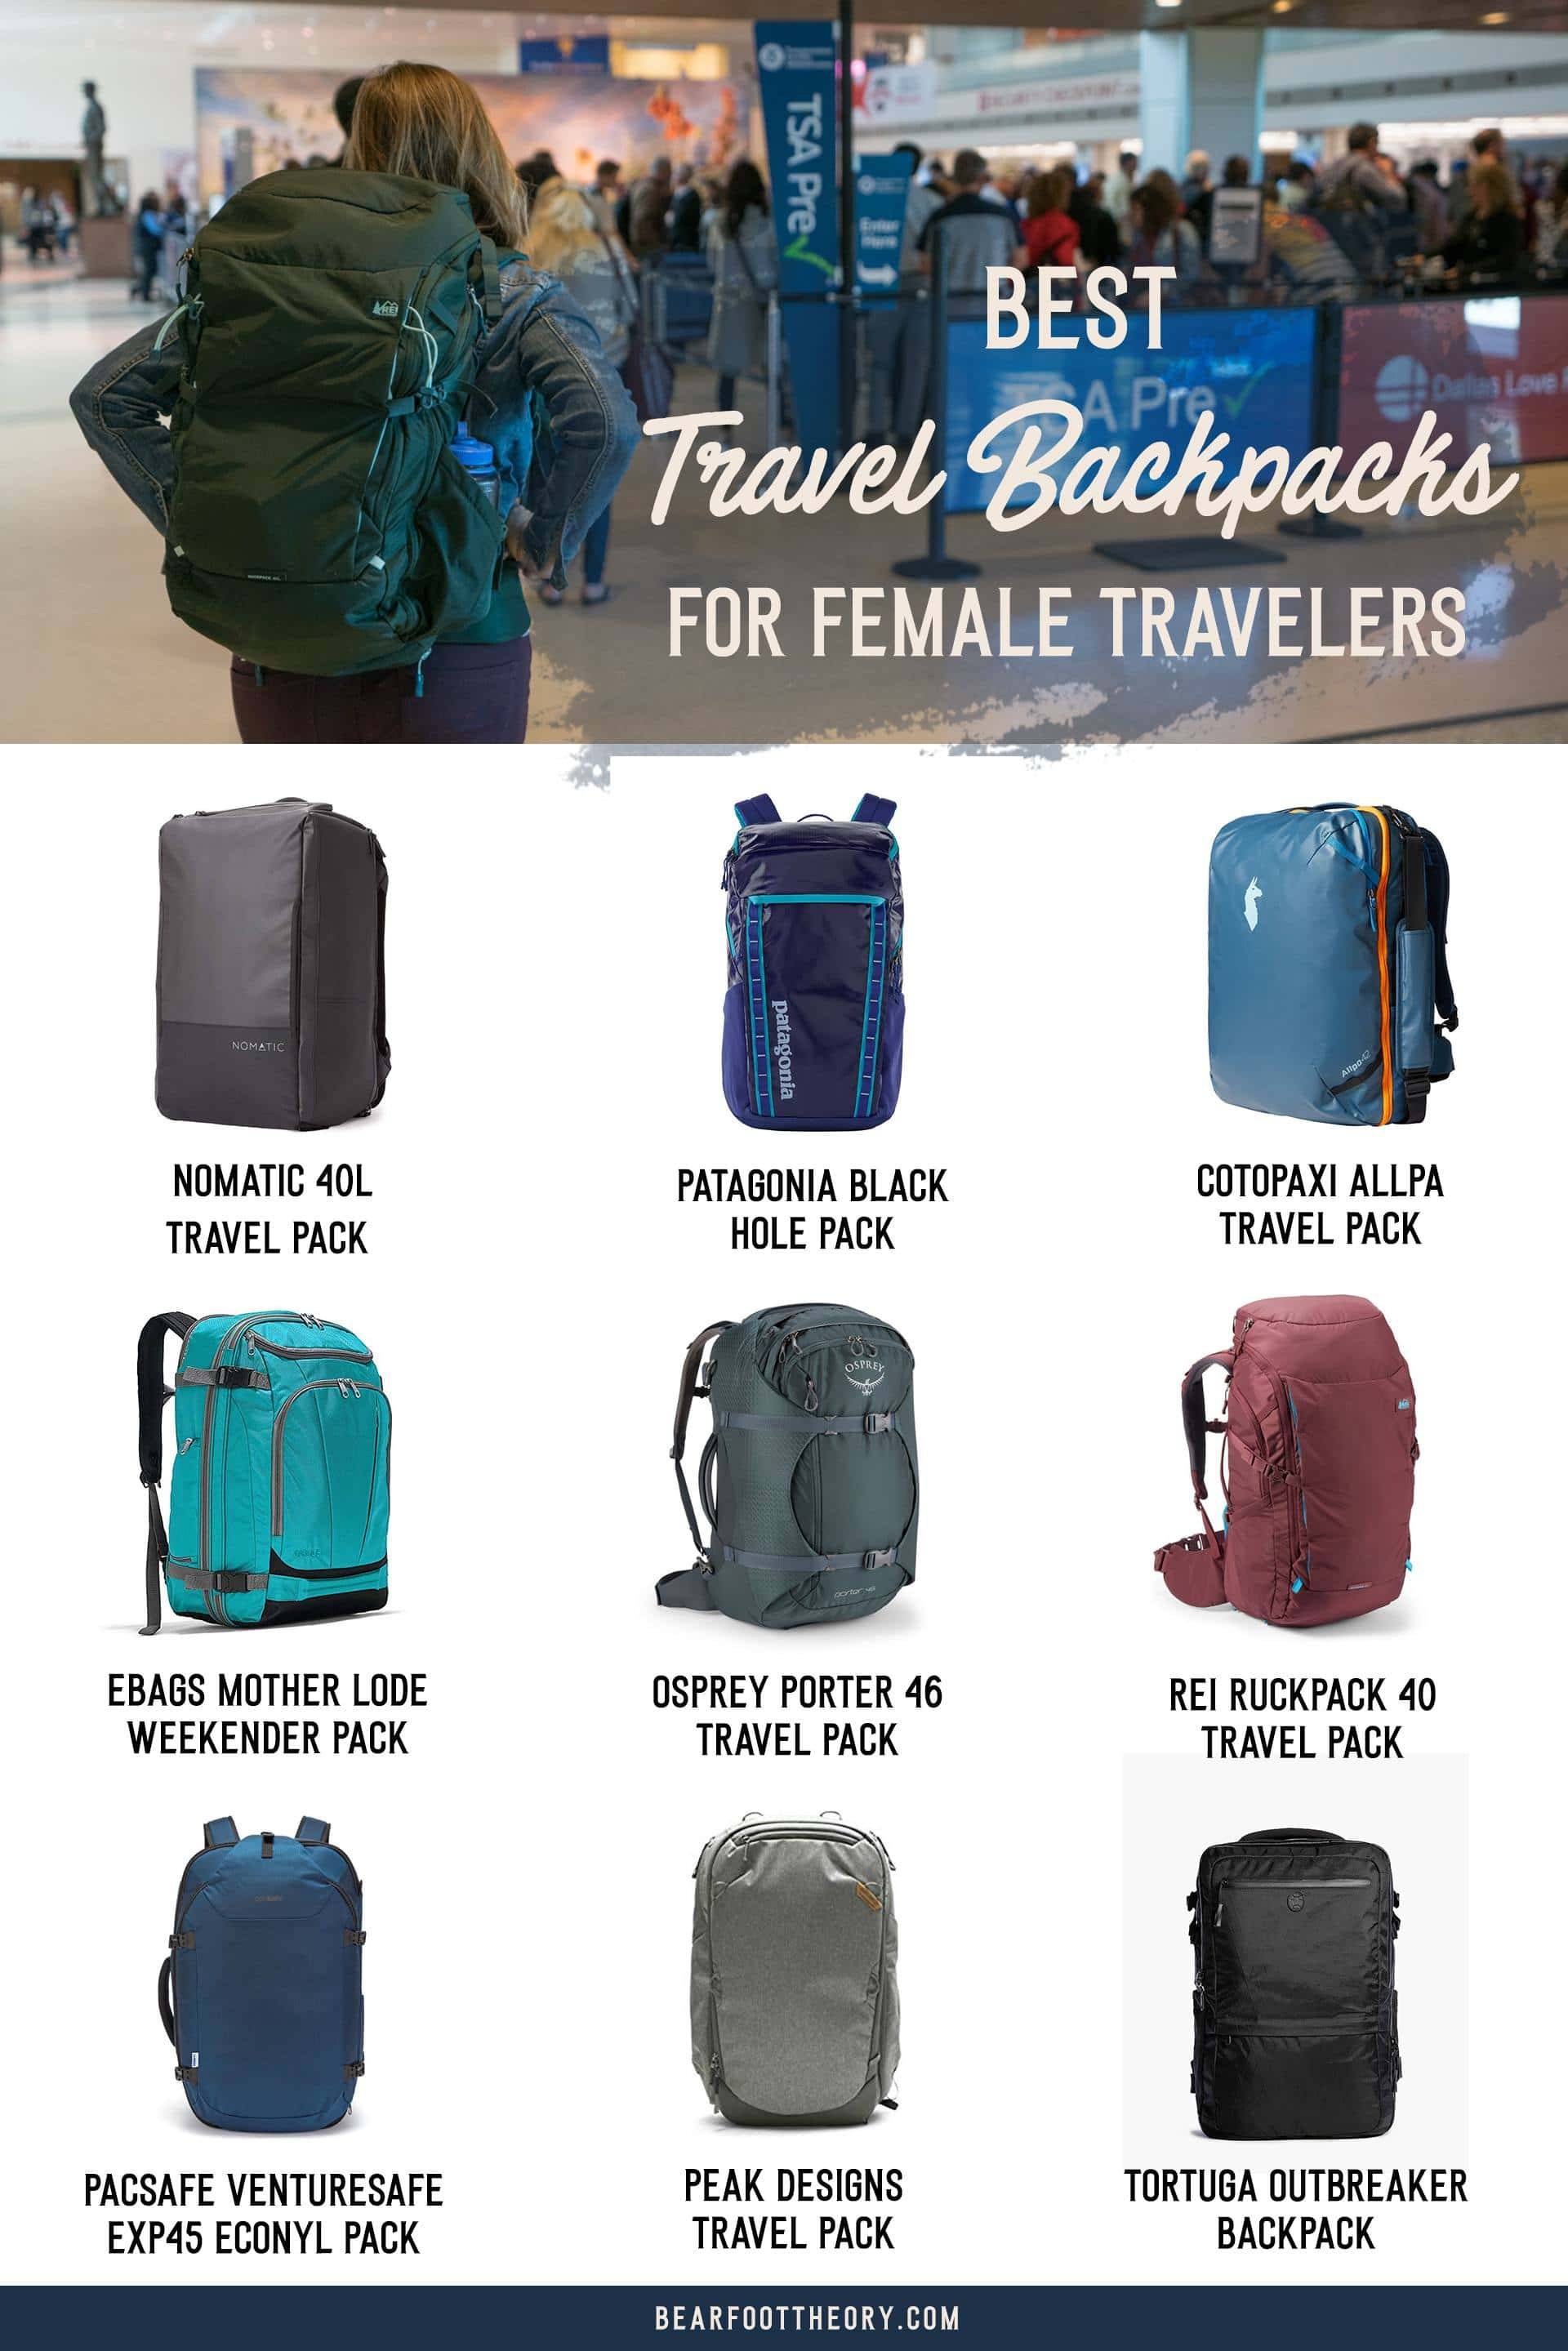 Pack light, get organized, and be more flexible on your travels. Here are the 9 best travel backpacks for women in 2020 for easy packing & happy traveling.